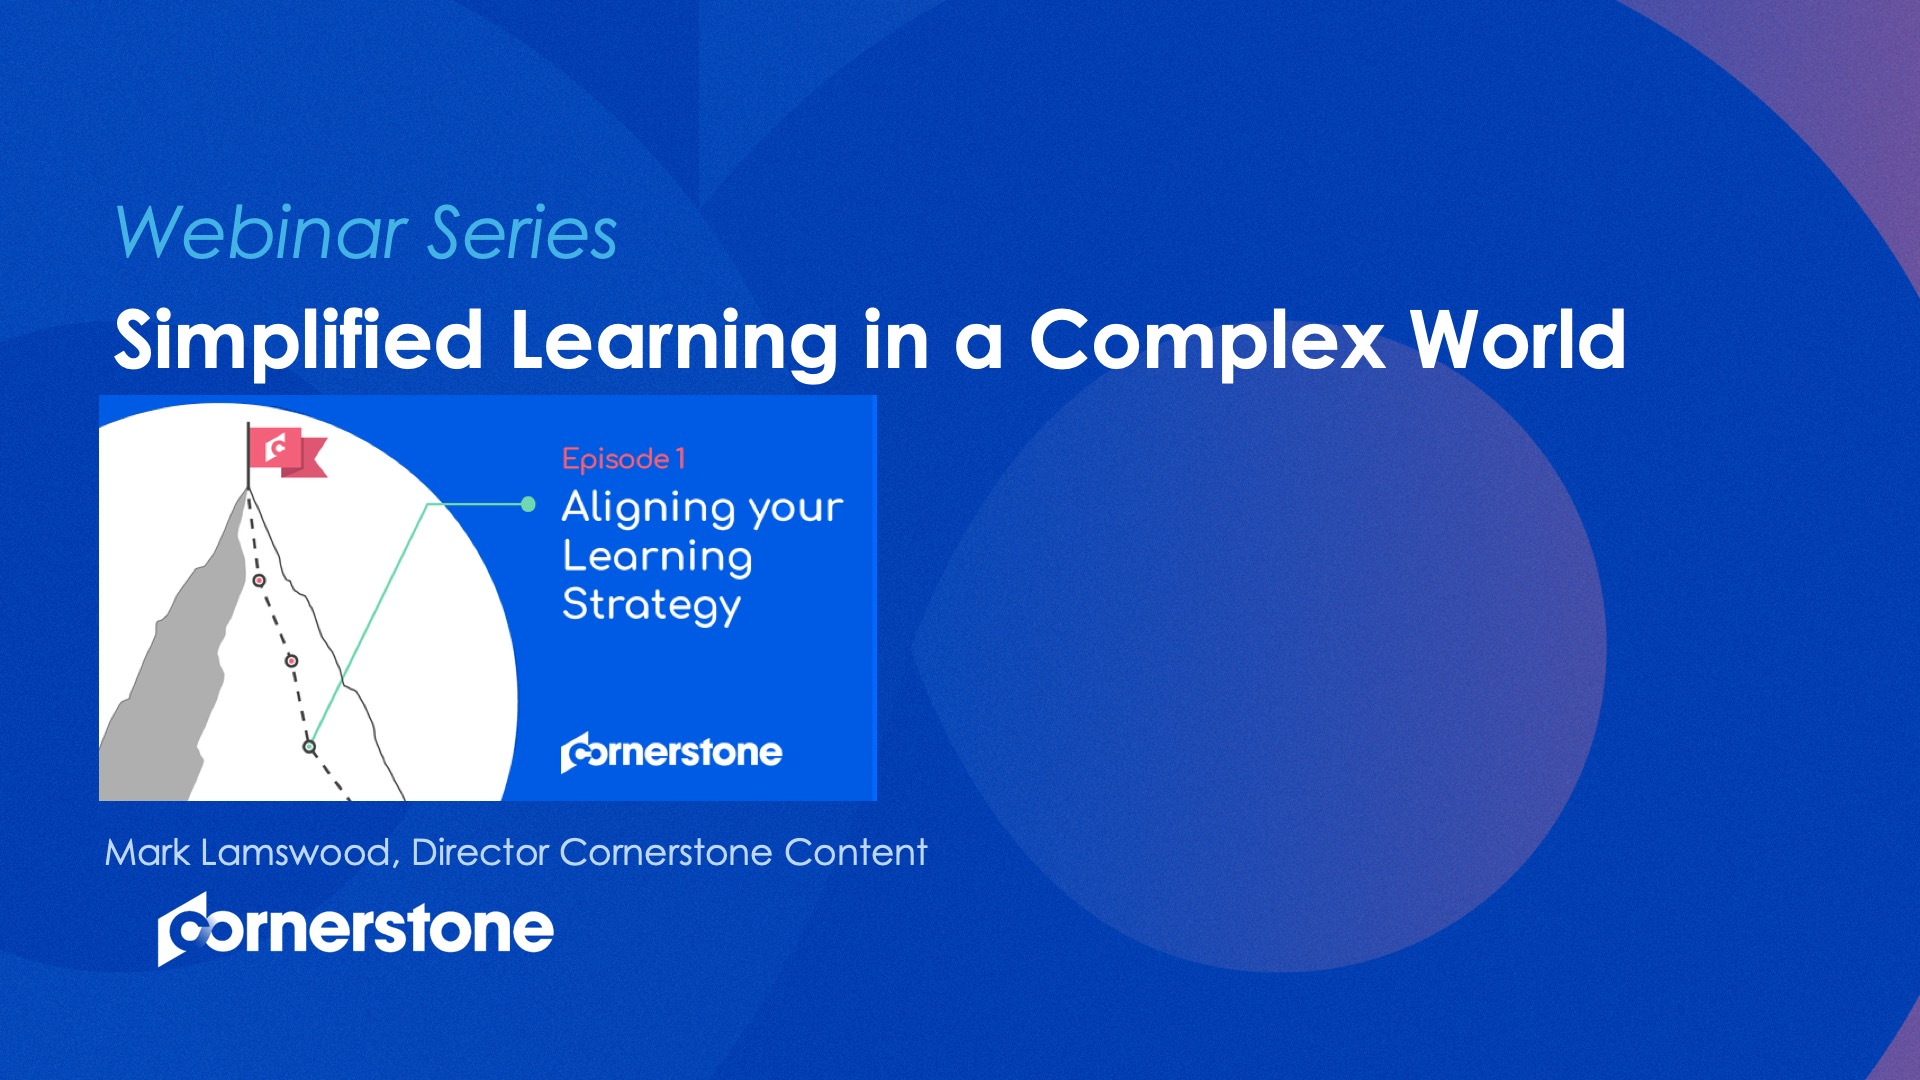 Simplified Learning in a Complex World